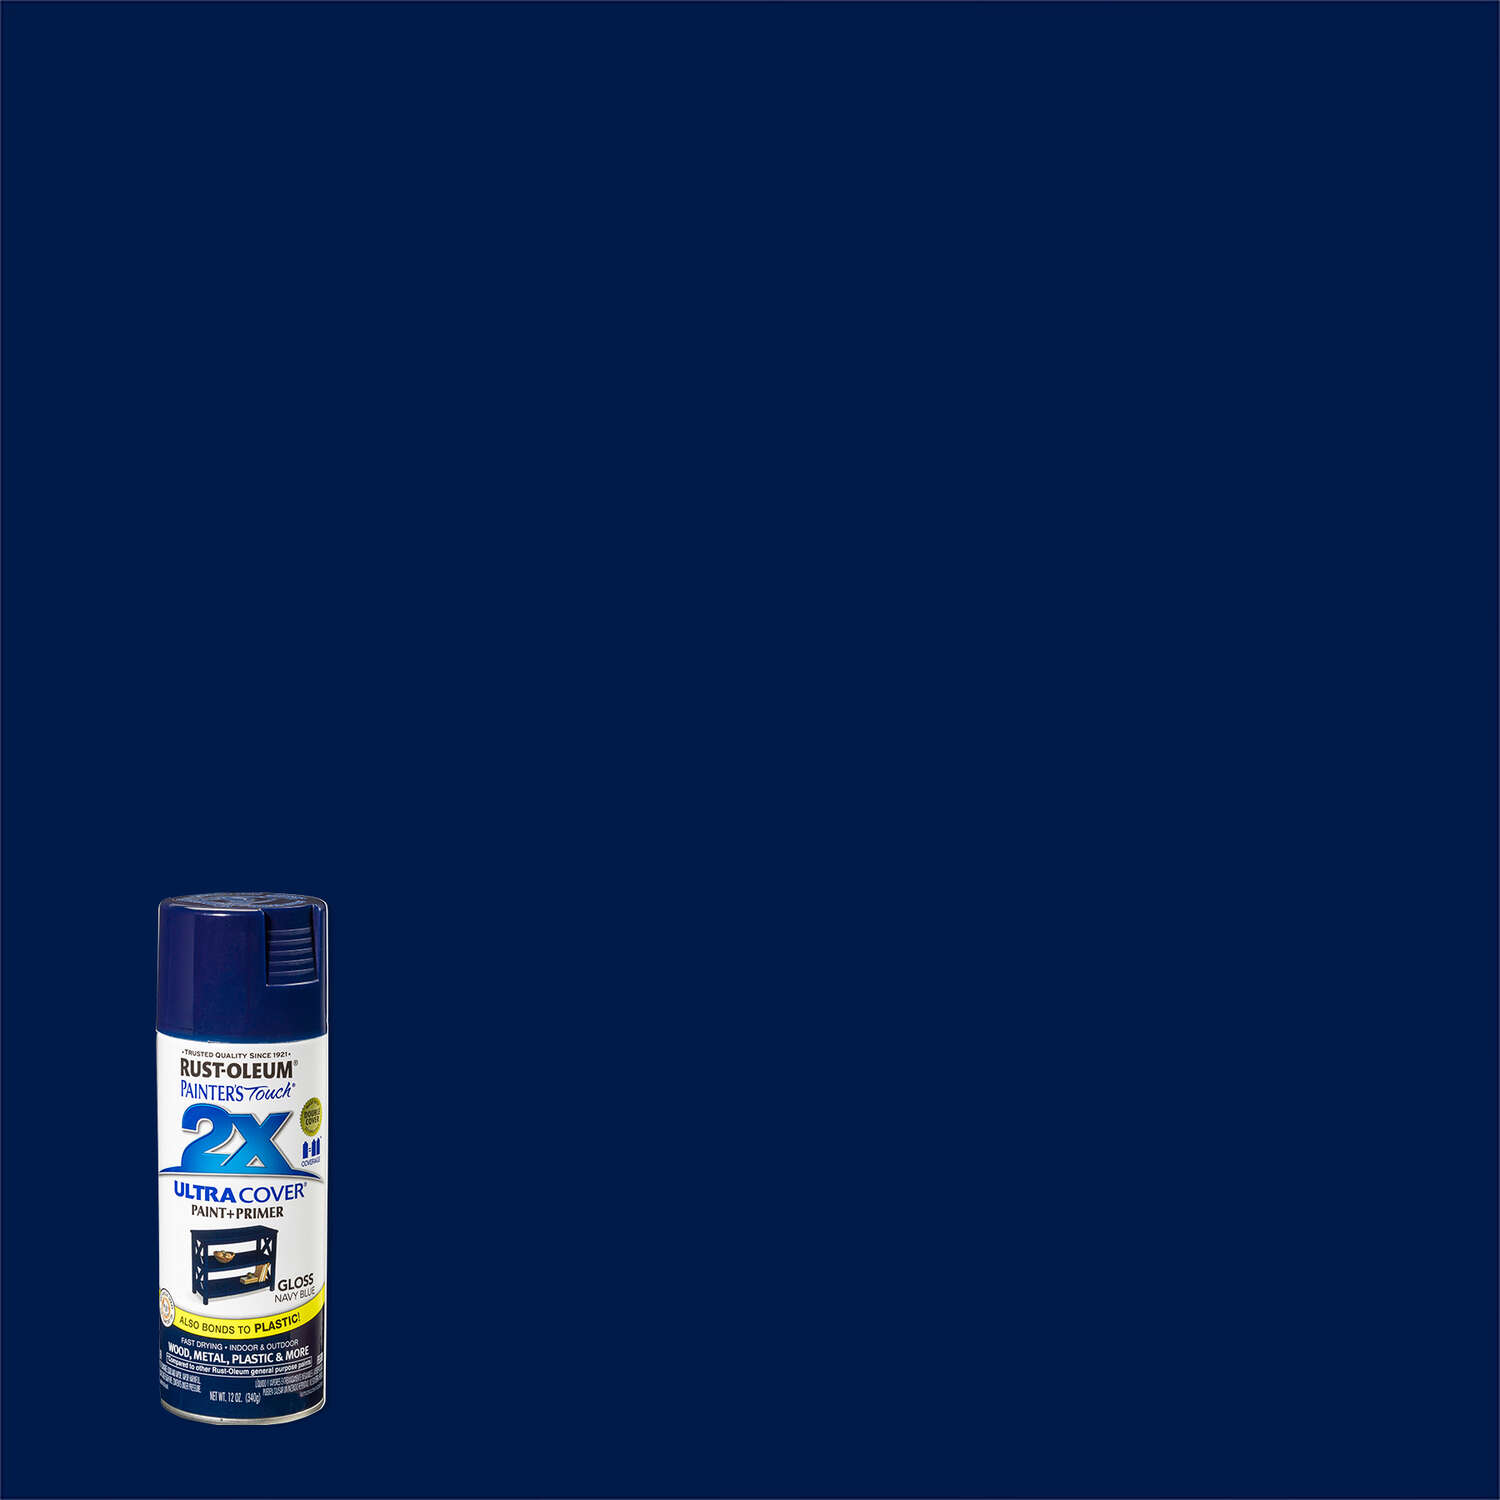 Rust-Oleum Painter's Touch 2X Ultra Cover Gloss Navy Blue Spray Paint 12 oz.